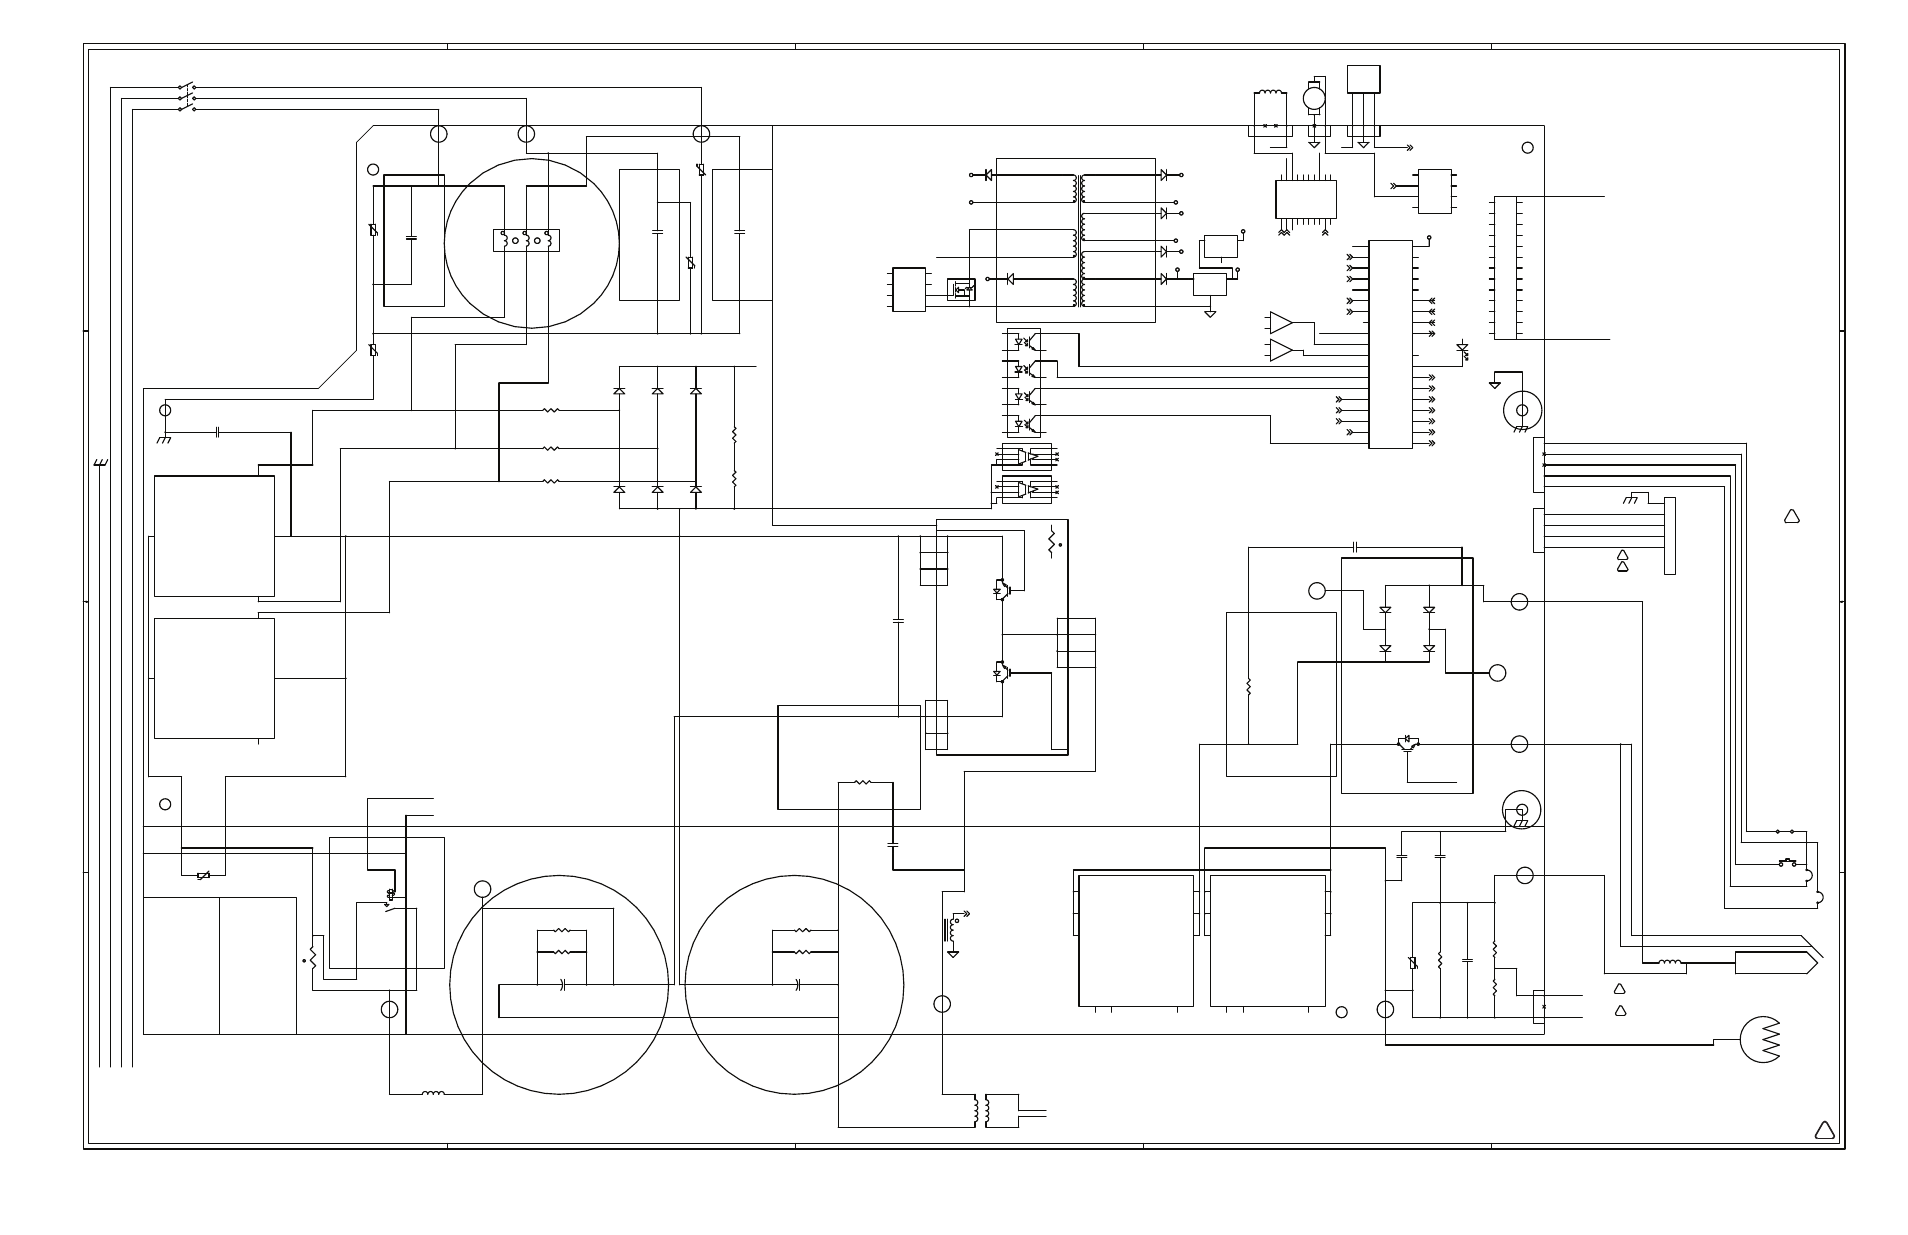 Power Board Wiring Diagram 400 V Ce A Background Image